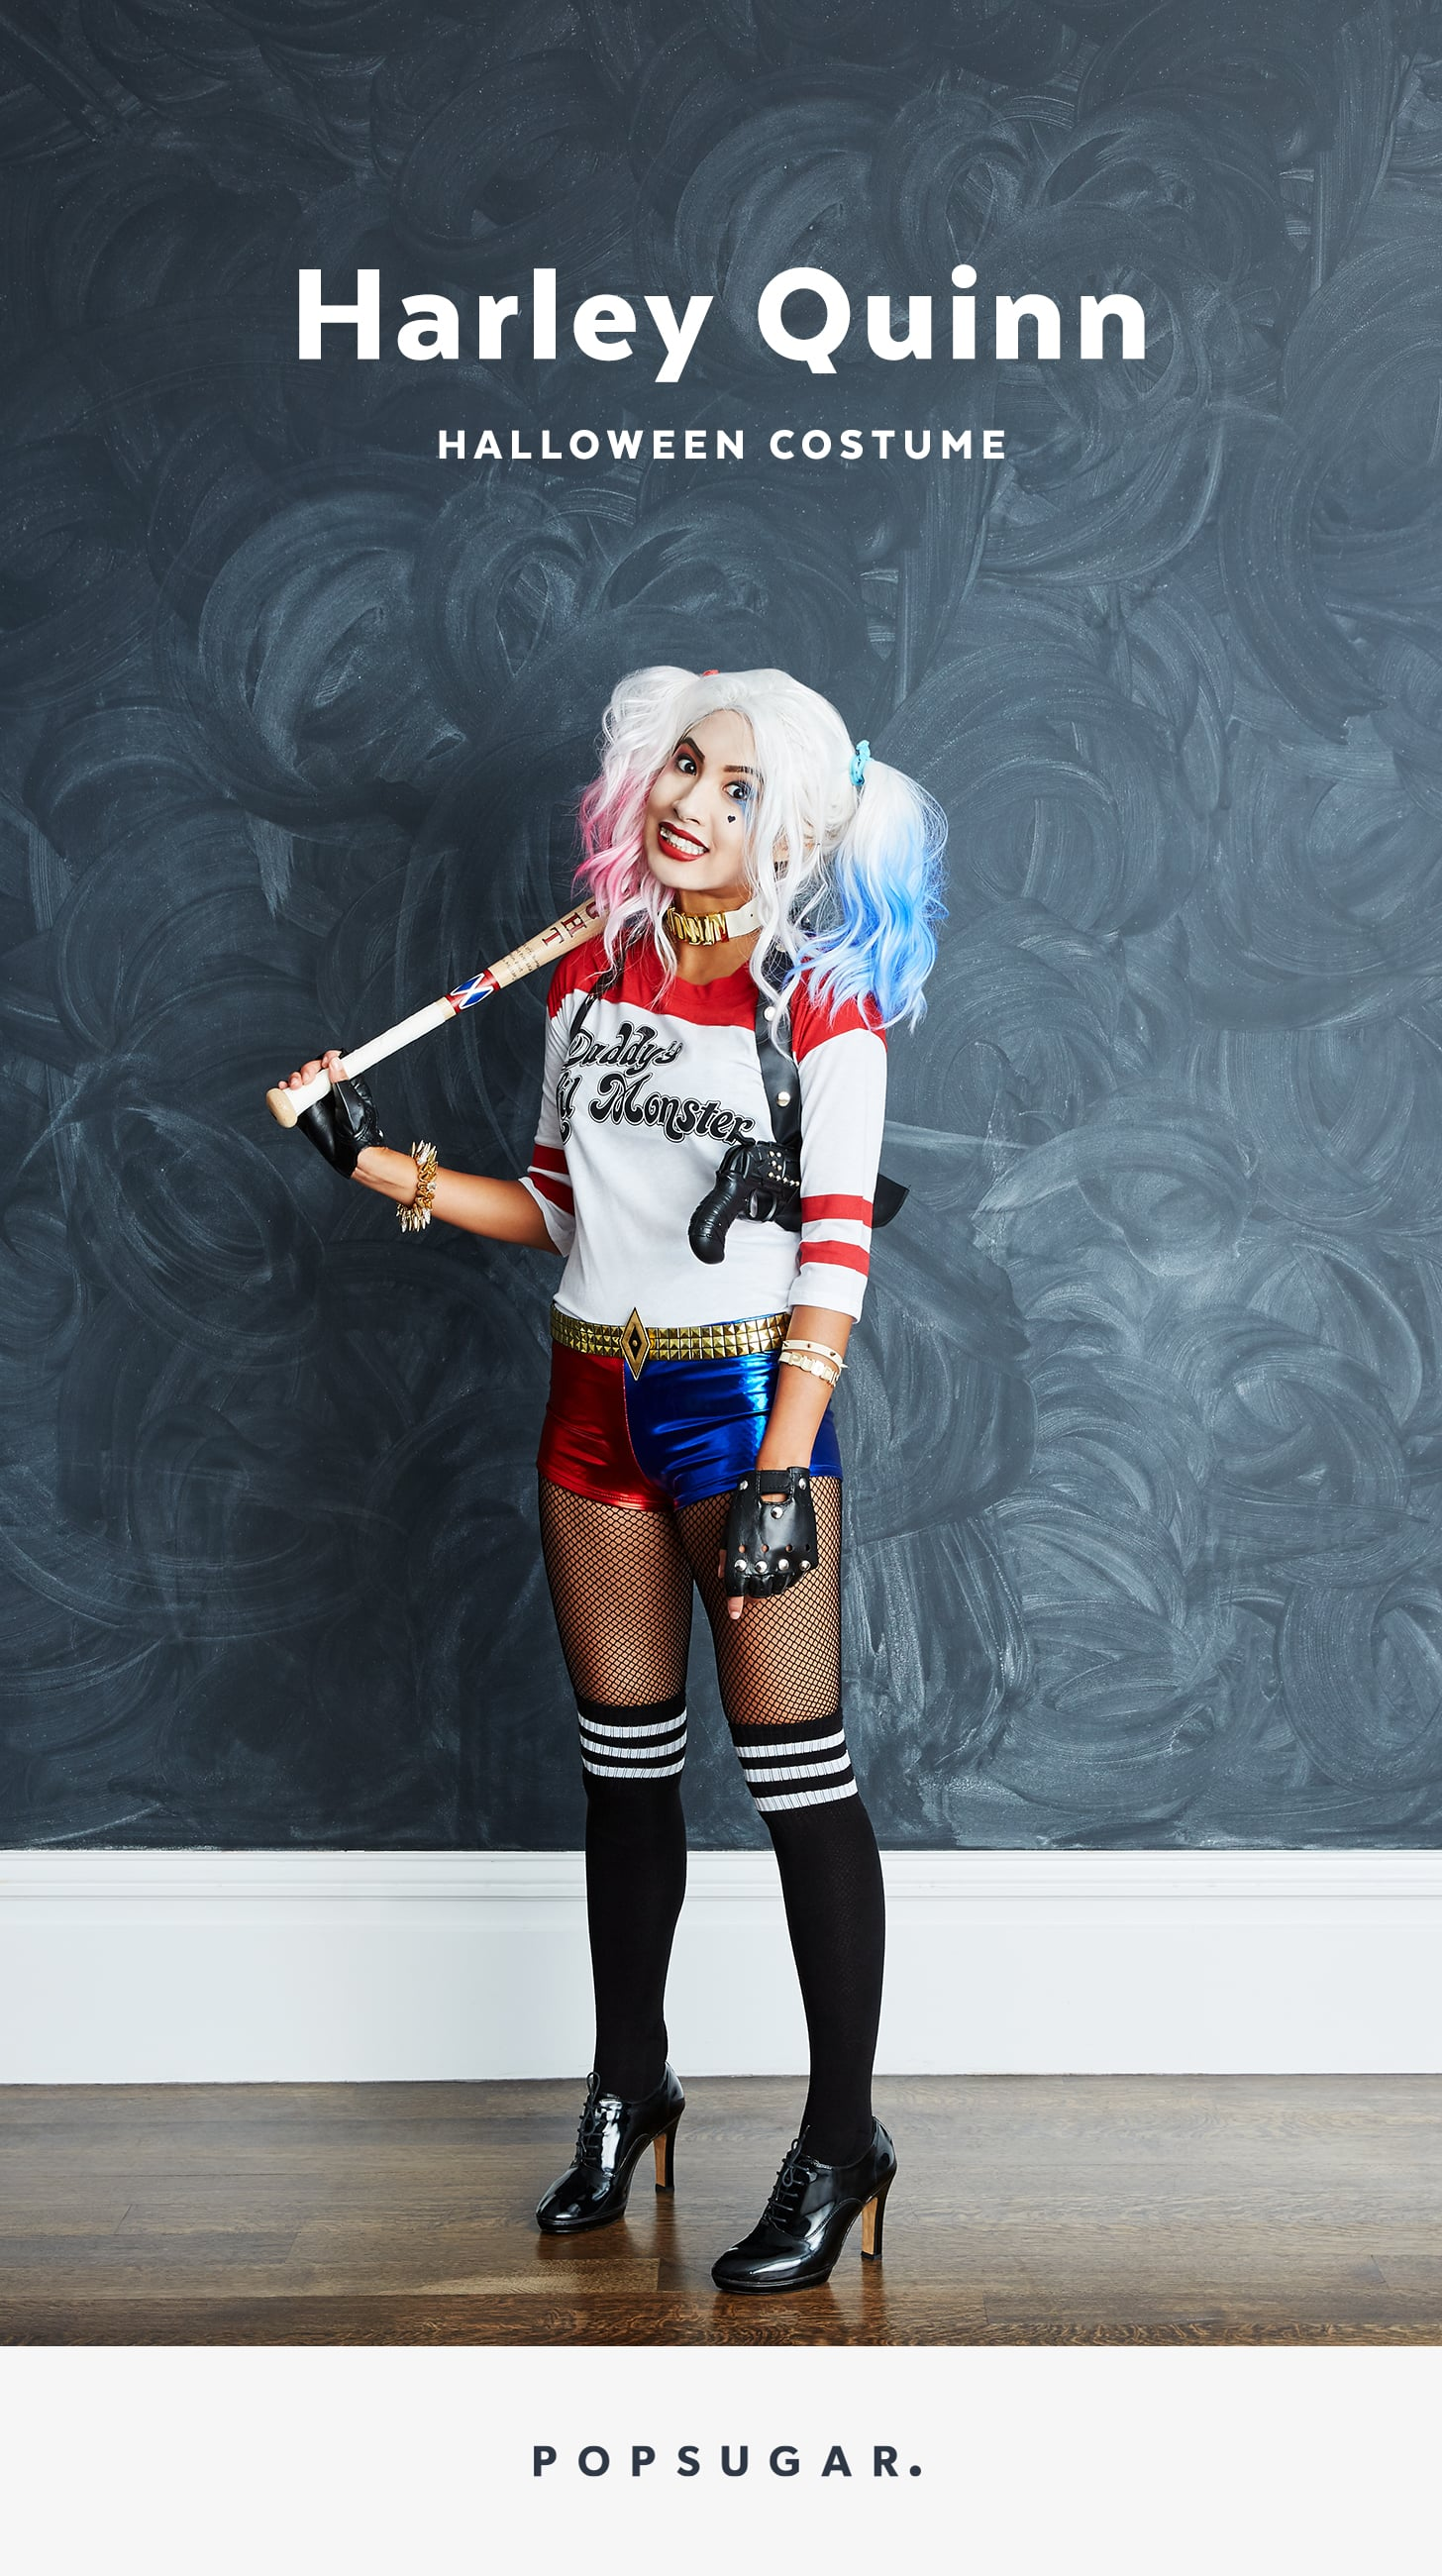 Harley Quinn Halloween Costume | POPSUGAR Smart Living